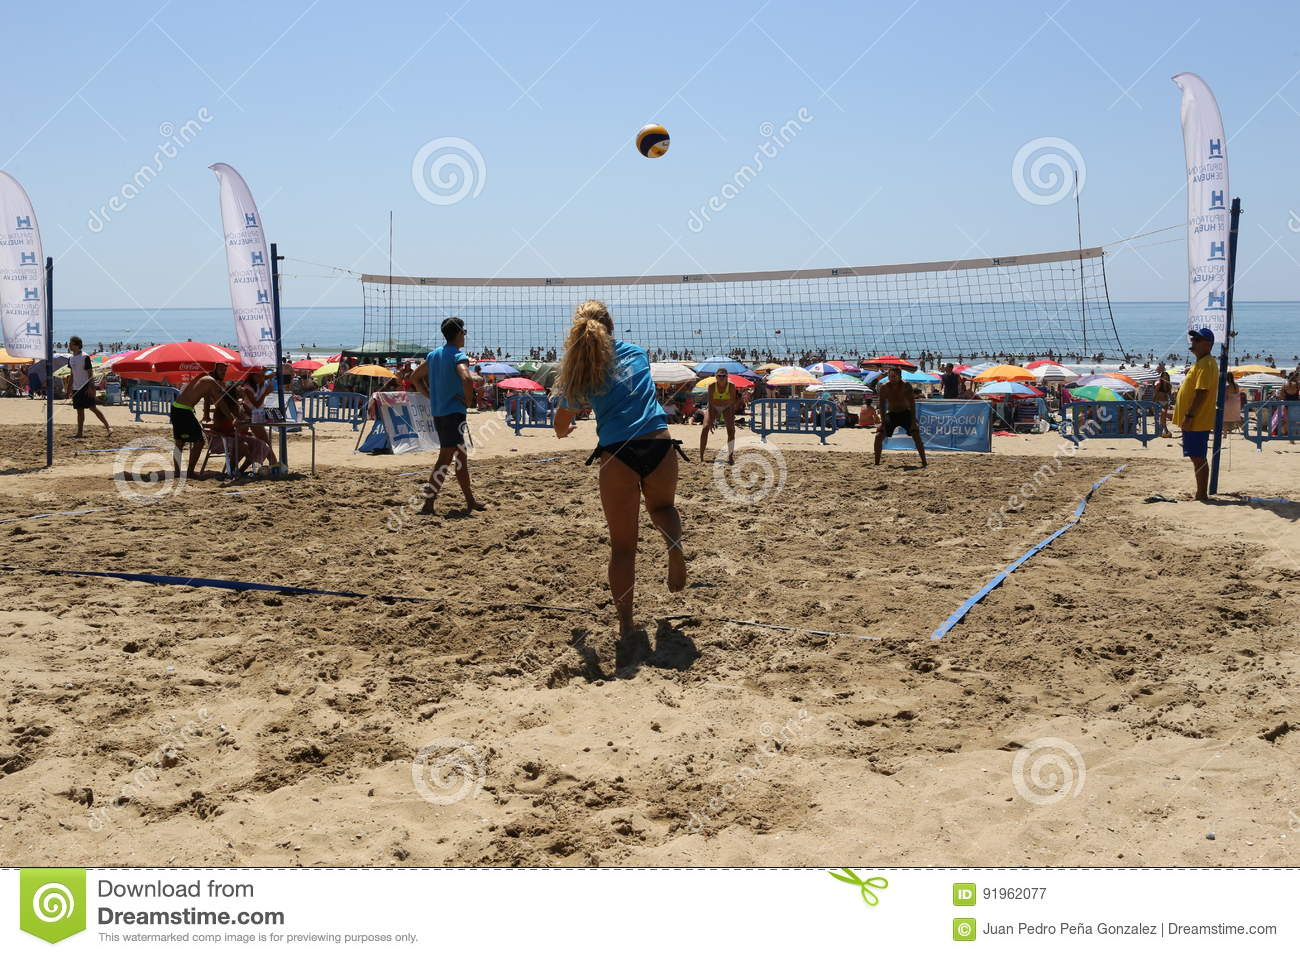 Mixed volleyball